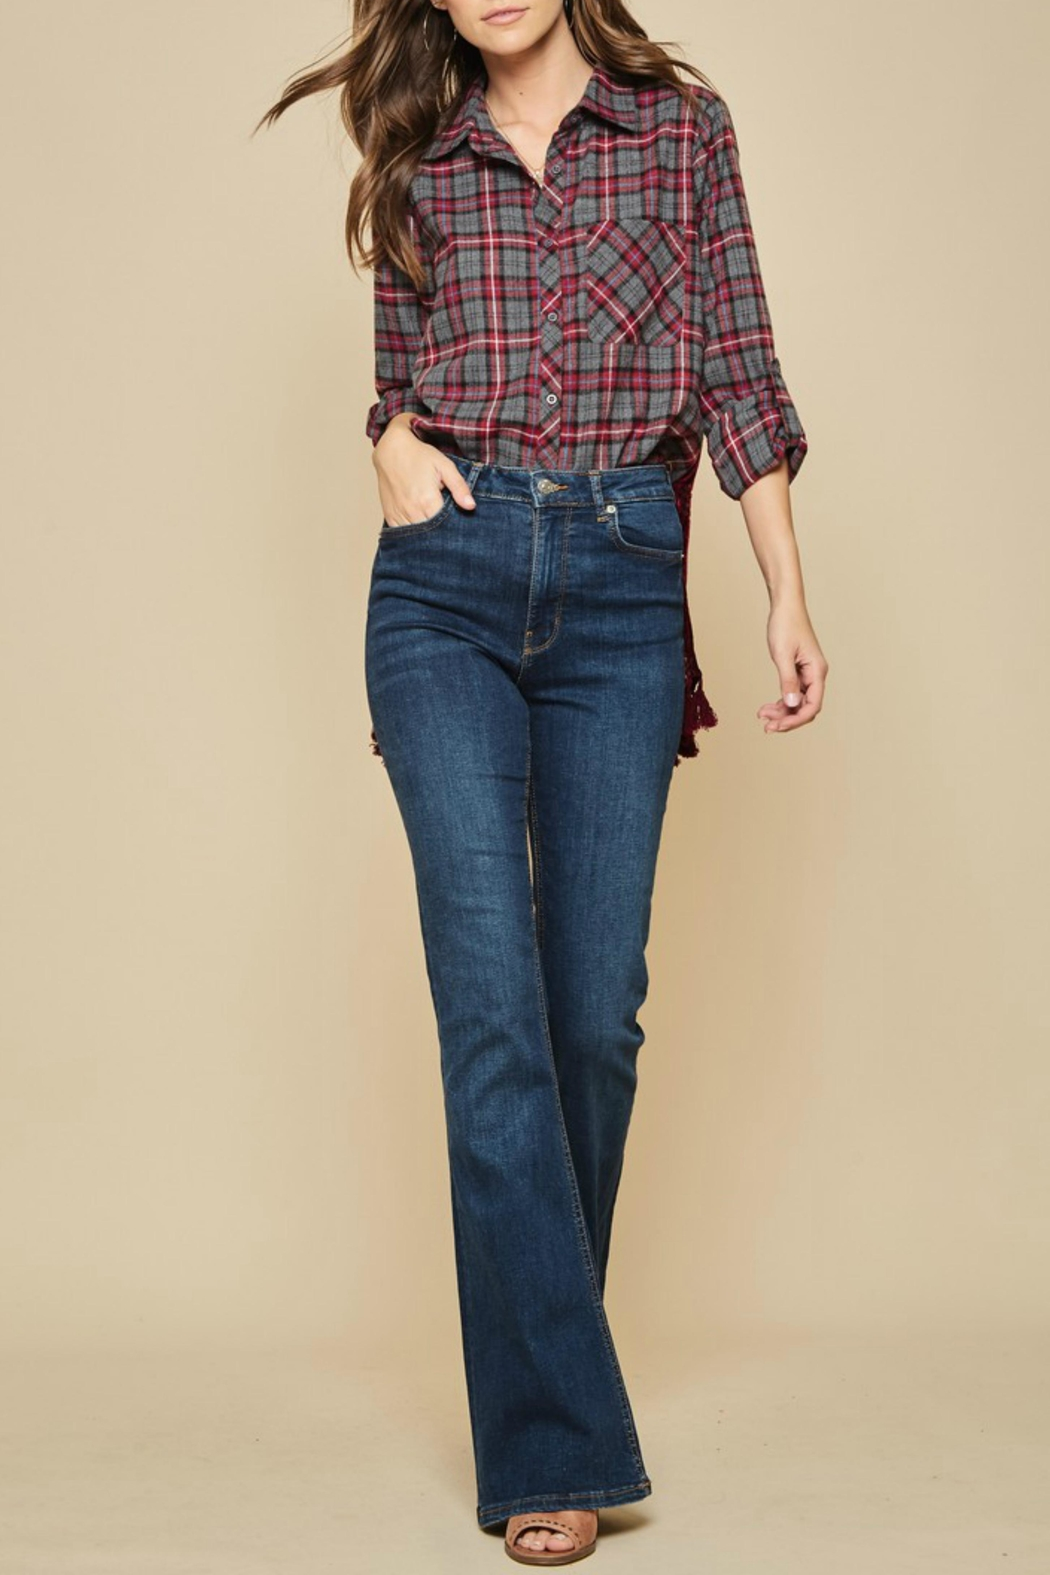 Andree by Unit Embroidered Burnout Flannel - Front Full Image